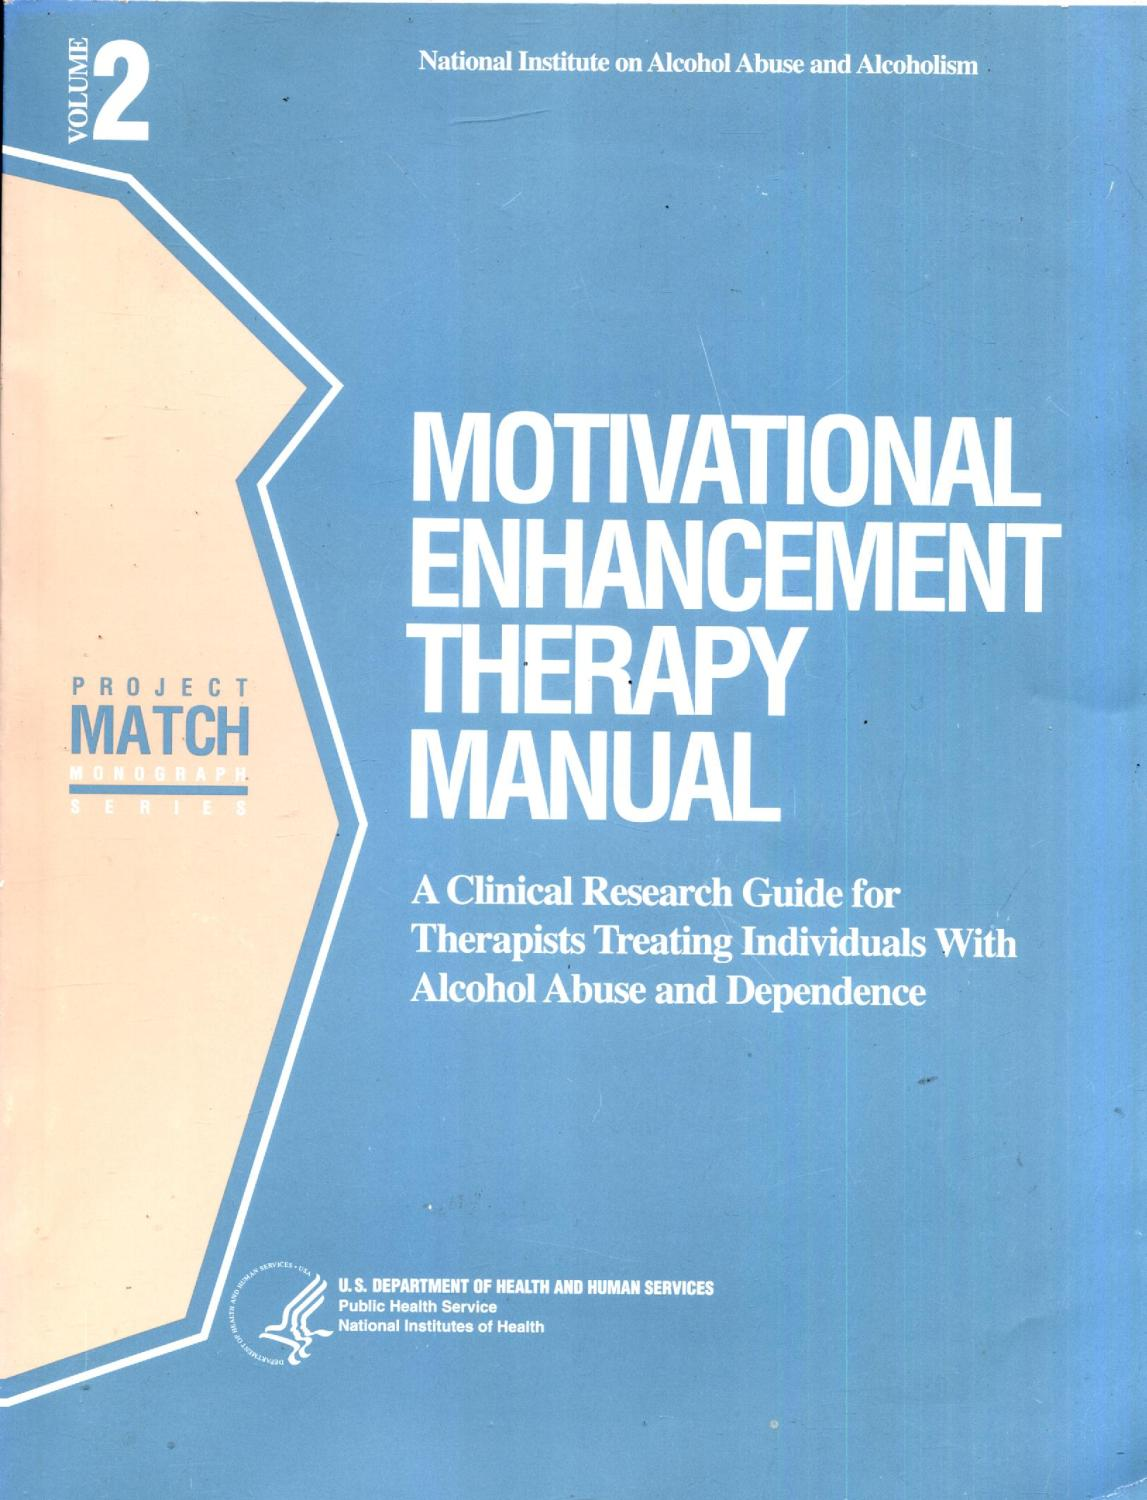 Motivational Enhancement Therapy Manual A Clinical